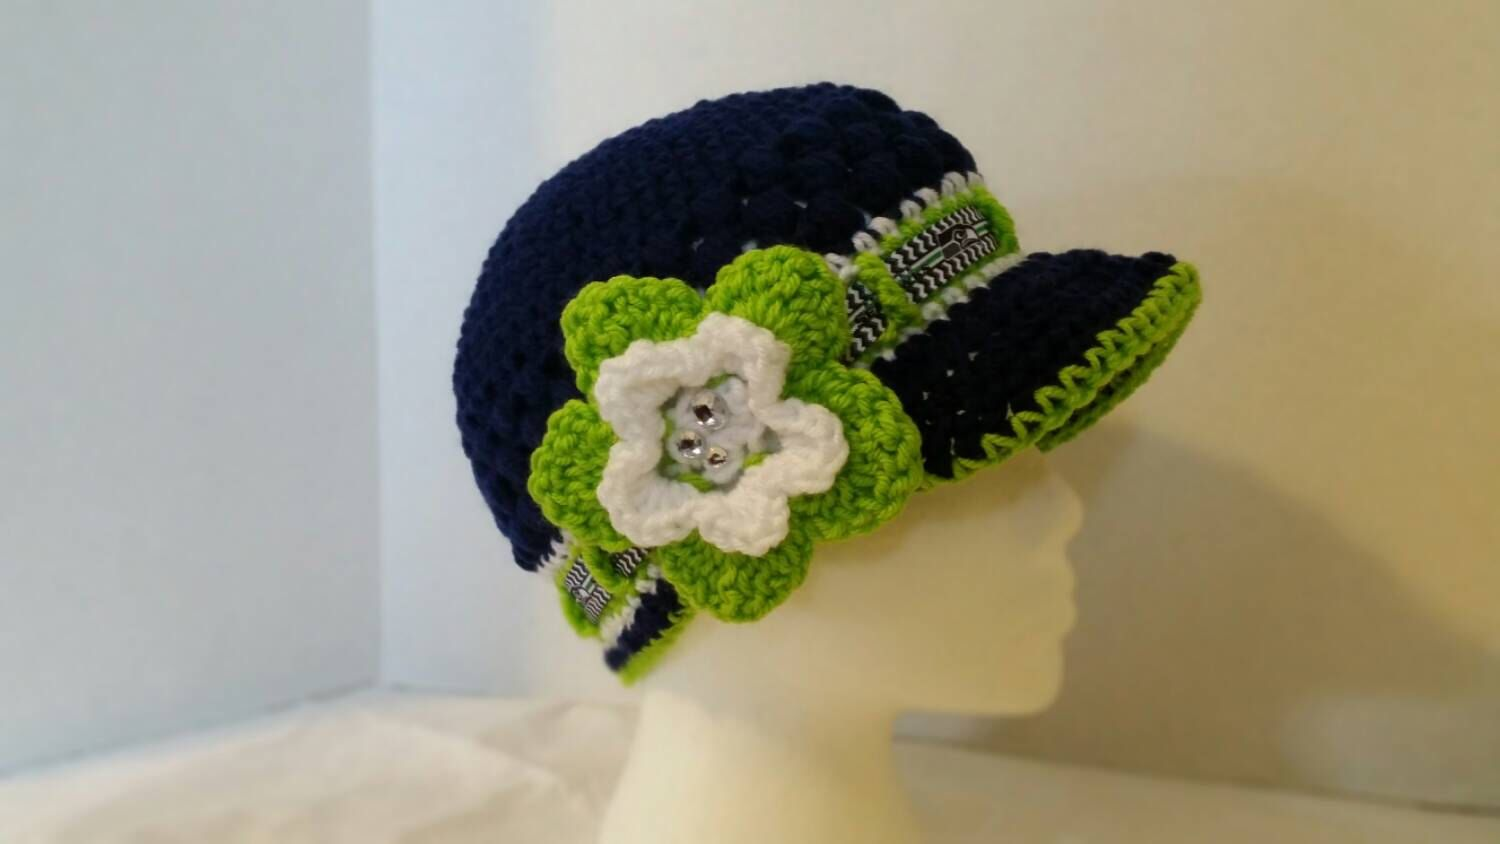 Seattle Seahawks superbowl ladies 12th man brimmed hat Nfc champs Newsboy  NFL Inspired Crochet newsboy knit beanie Football themed beani by Blissfulloops on Etsy https://www.etsy.com/listing/169380659/seattle-seahawks-superbowl-ladies-12th